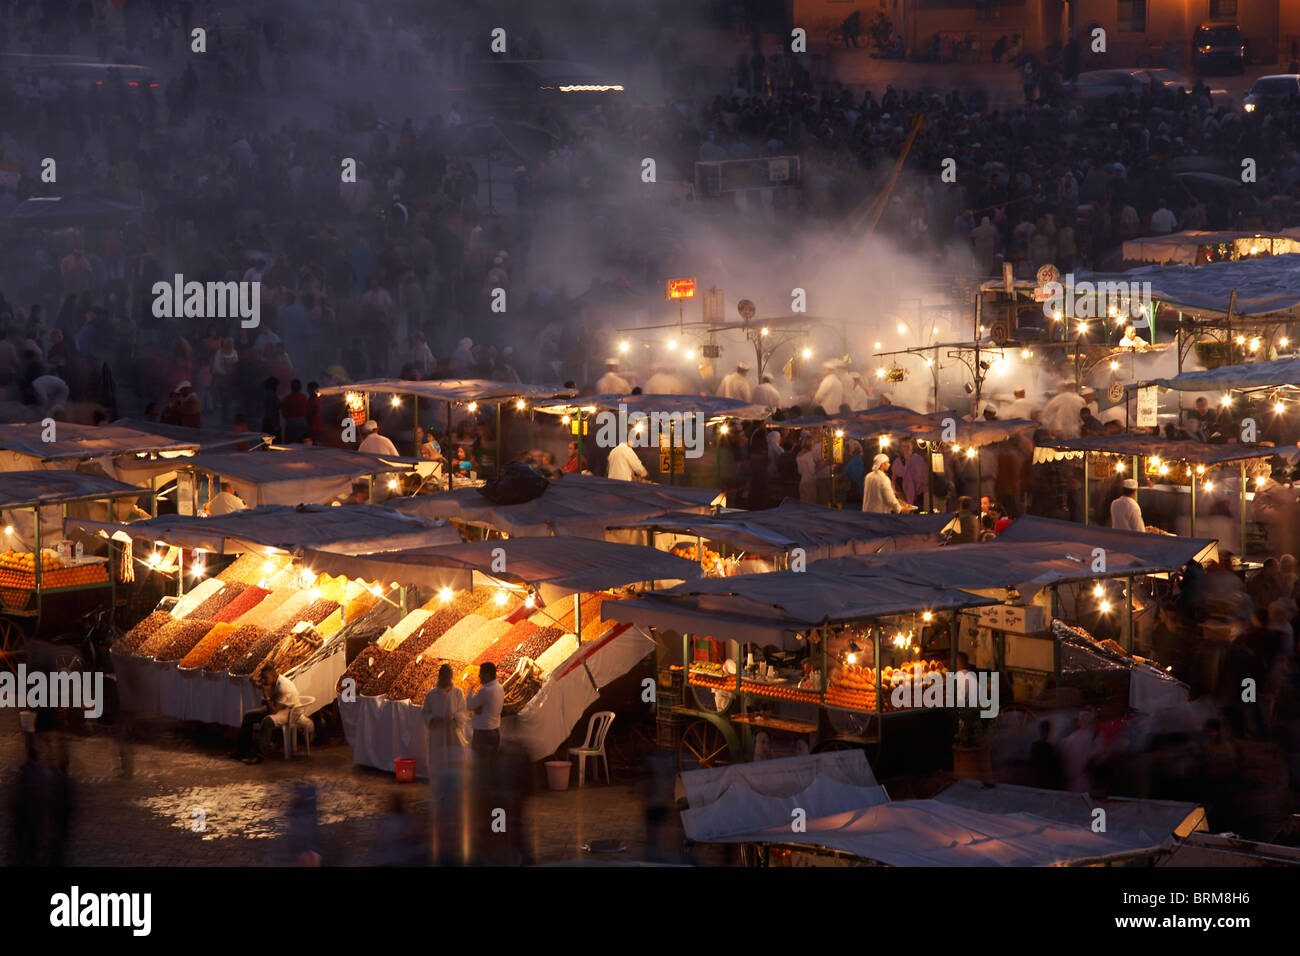 MARRAKESH: ELEVATED VIEW FOOD STALLS IN DJEMAA EL FNA AT NIGHT - Stock Image